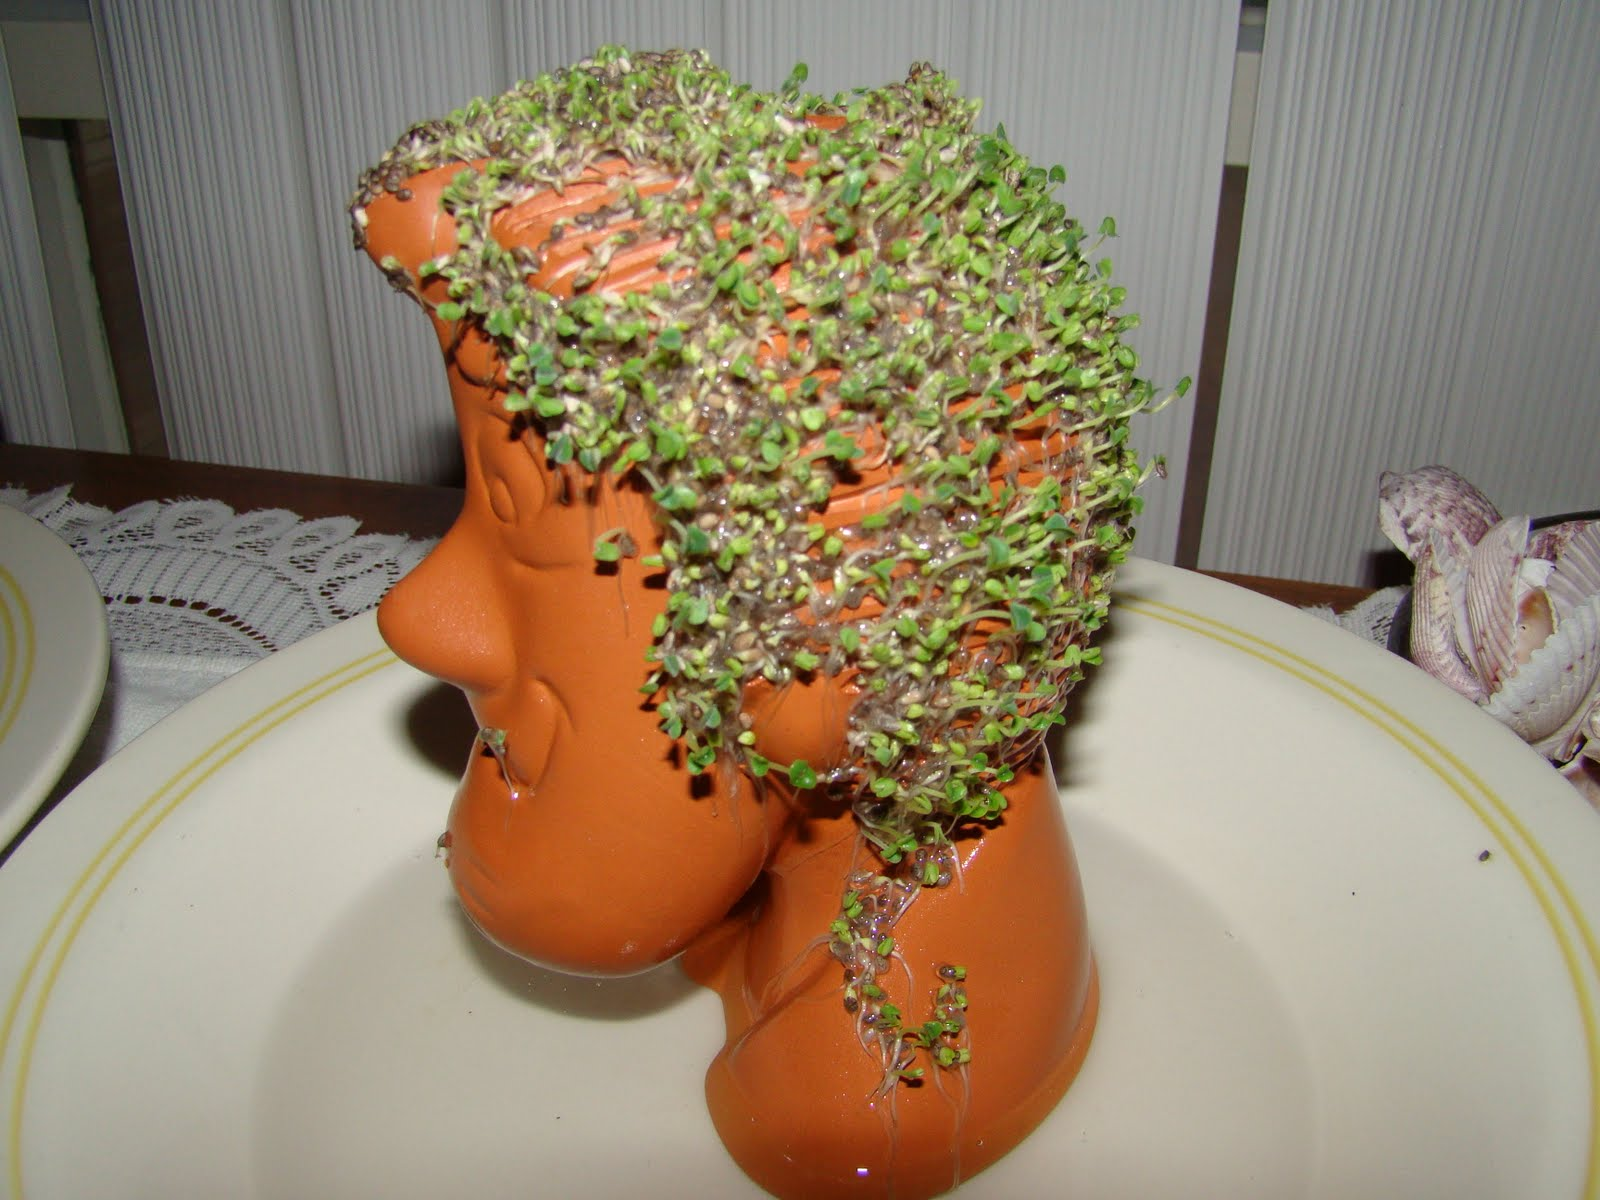 Chia pet herb garden - Add 1 4 Cup Of Water To 2 Teaspoons Of Chia Seeds Stir The Mixture After 15 Minutes To Moisten All Seeds Then Let It Set For 24 Hours